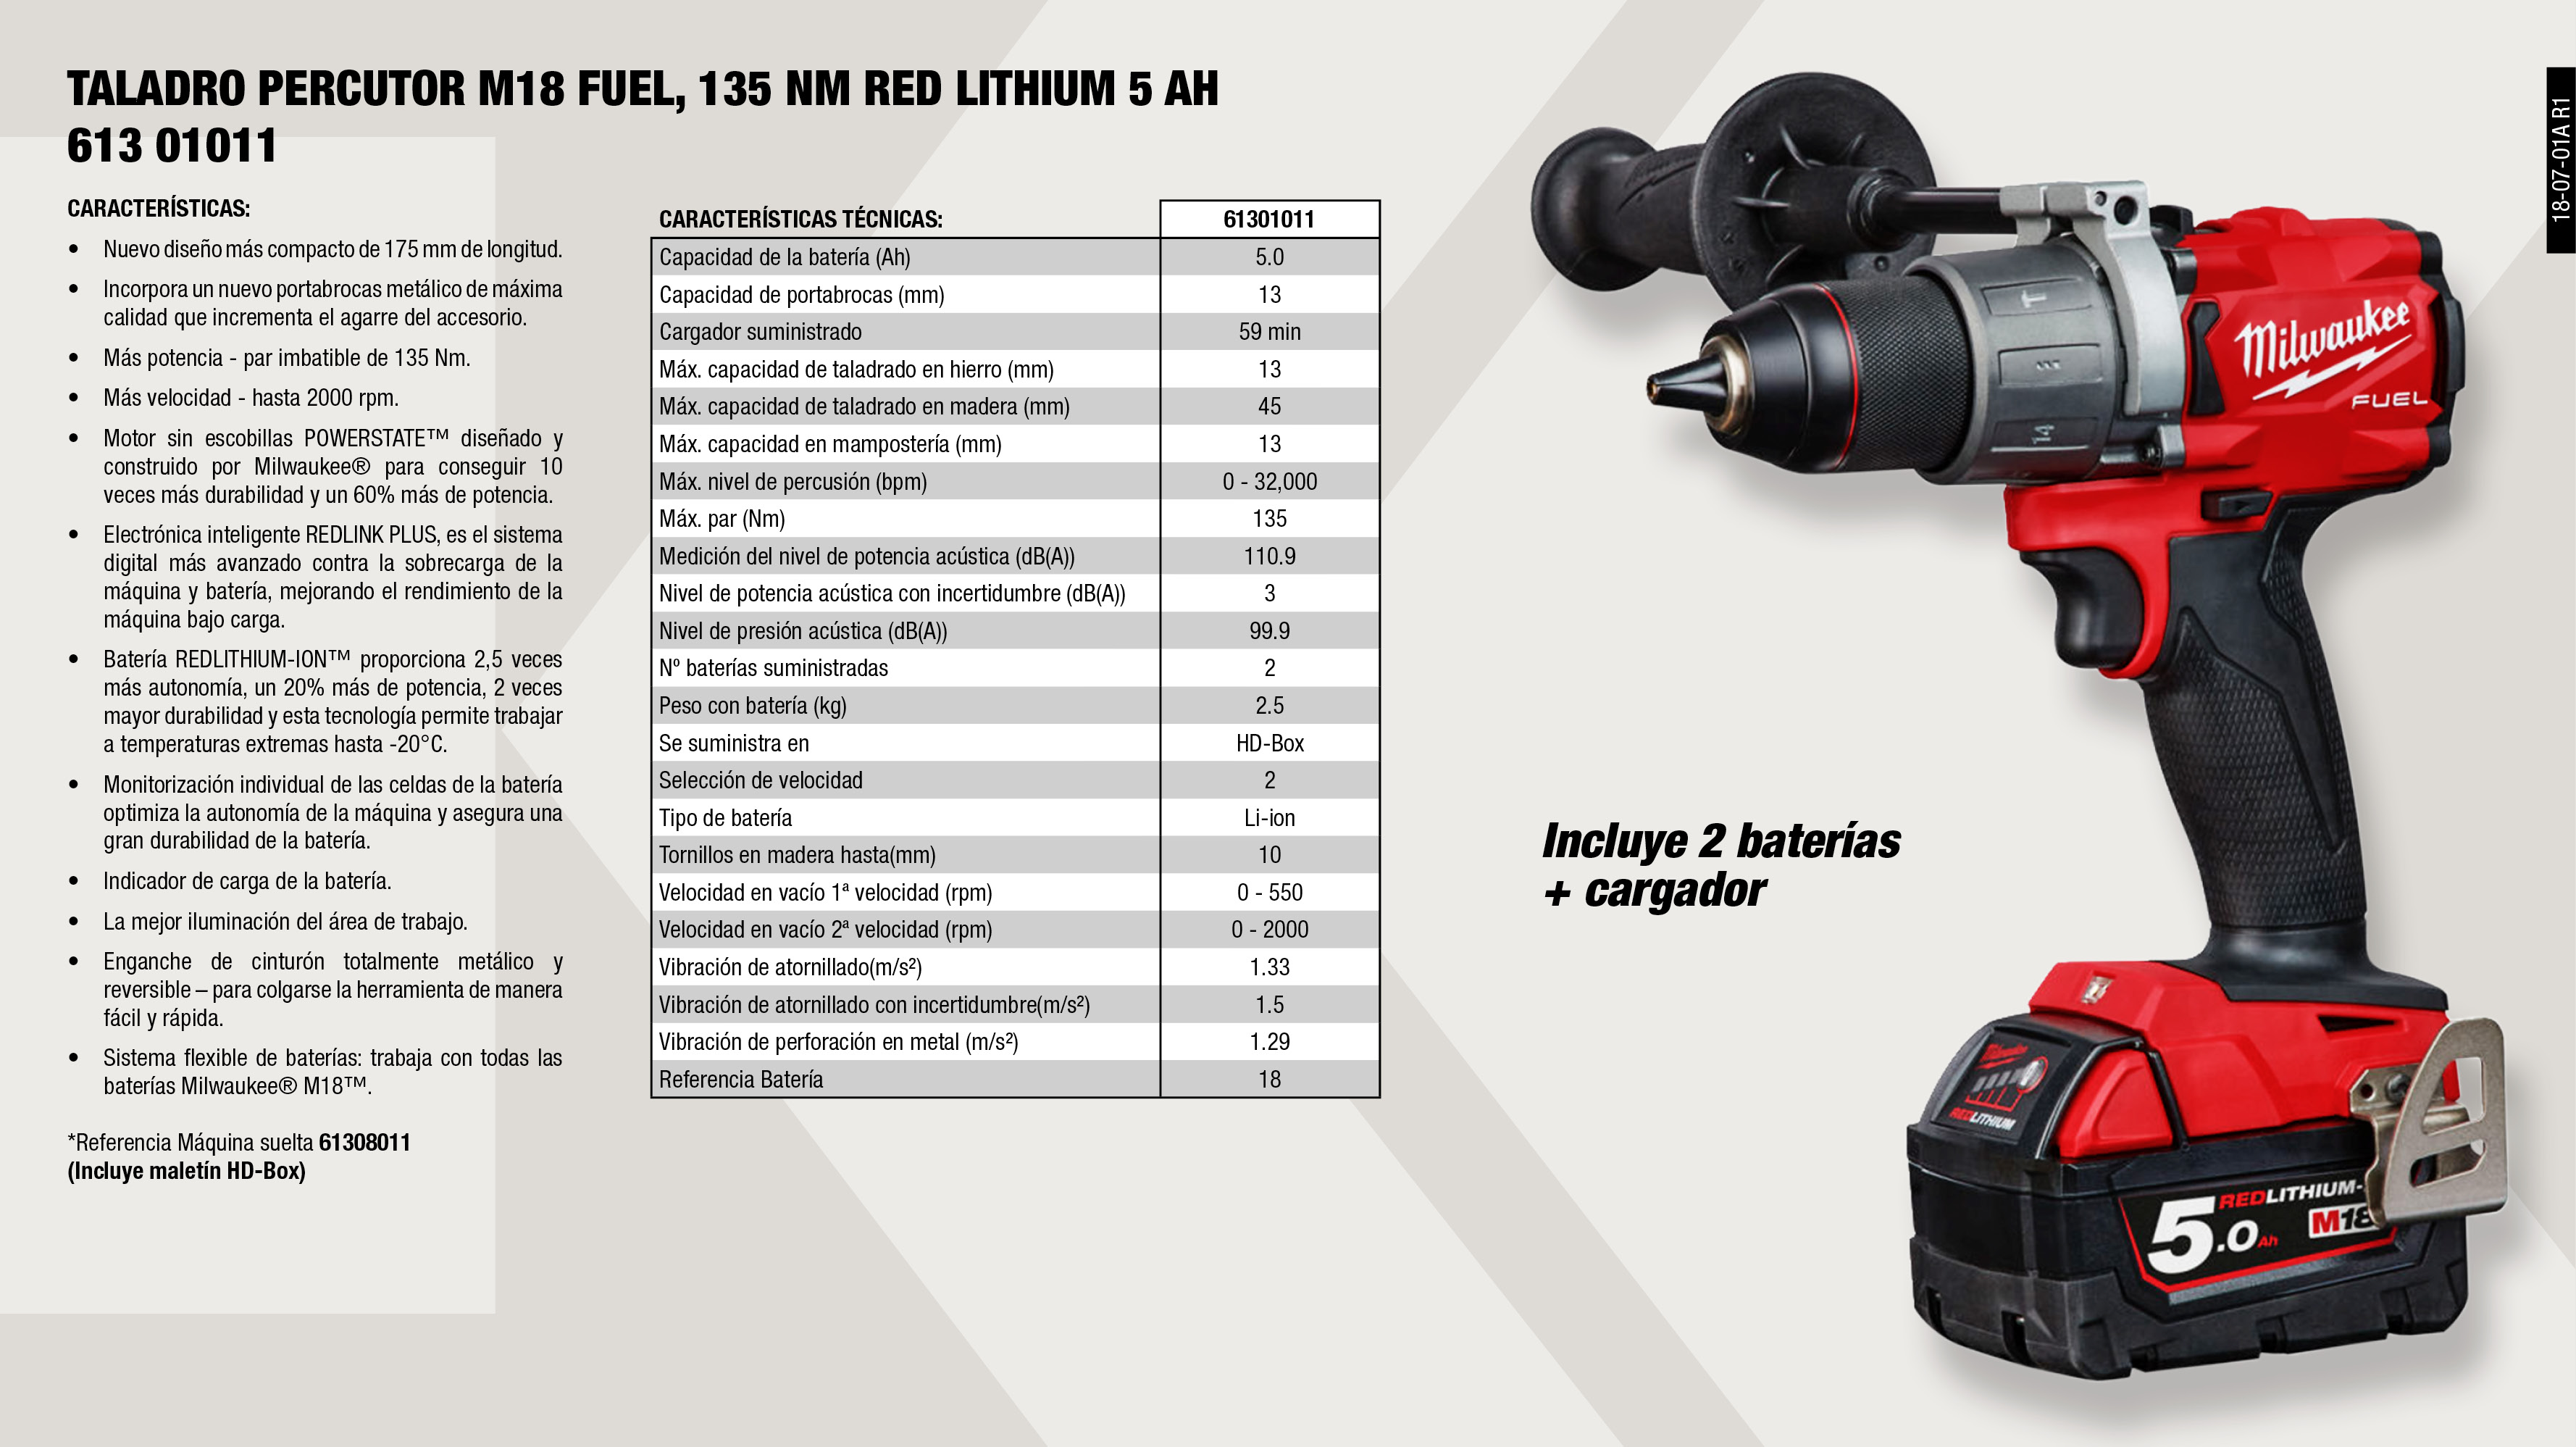 TALADRO PERCUTOR M18 FUEL, 135NM SIN BATERIAS			